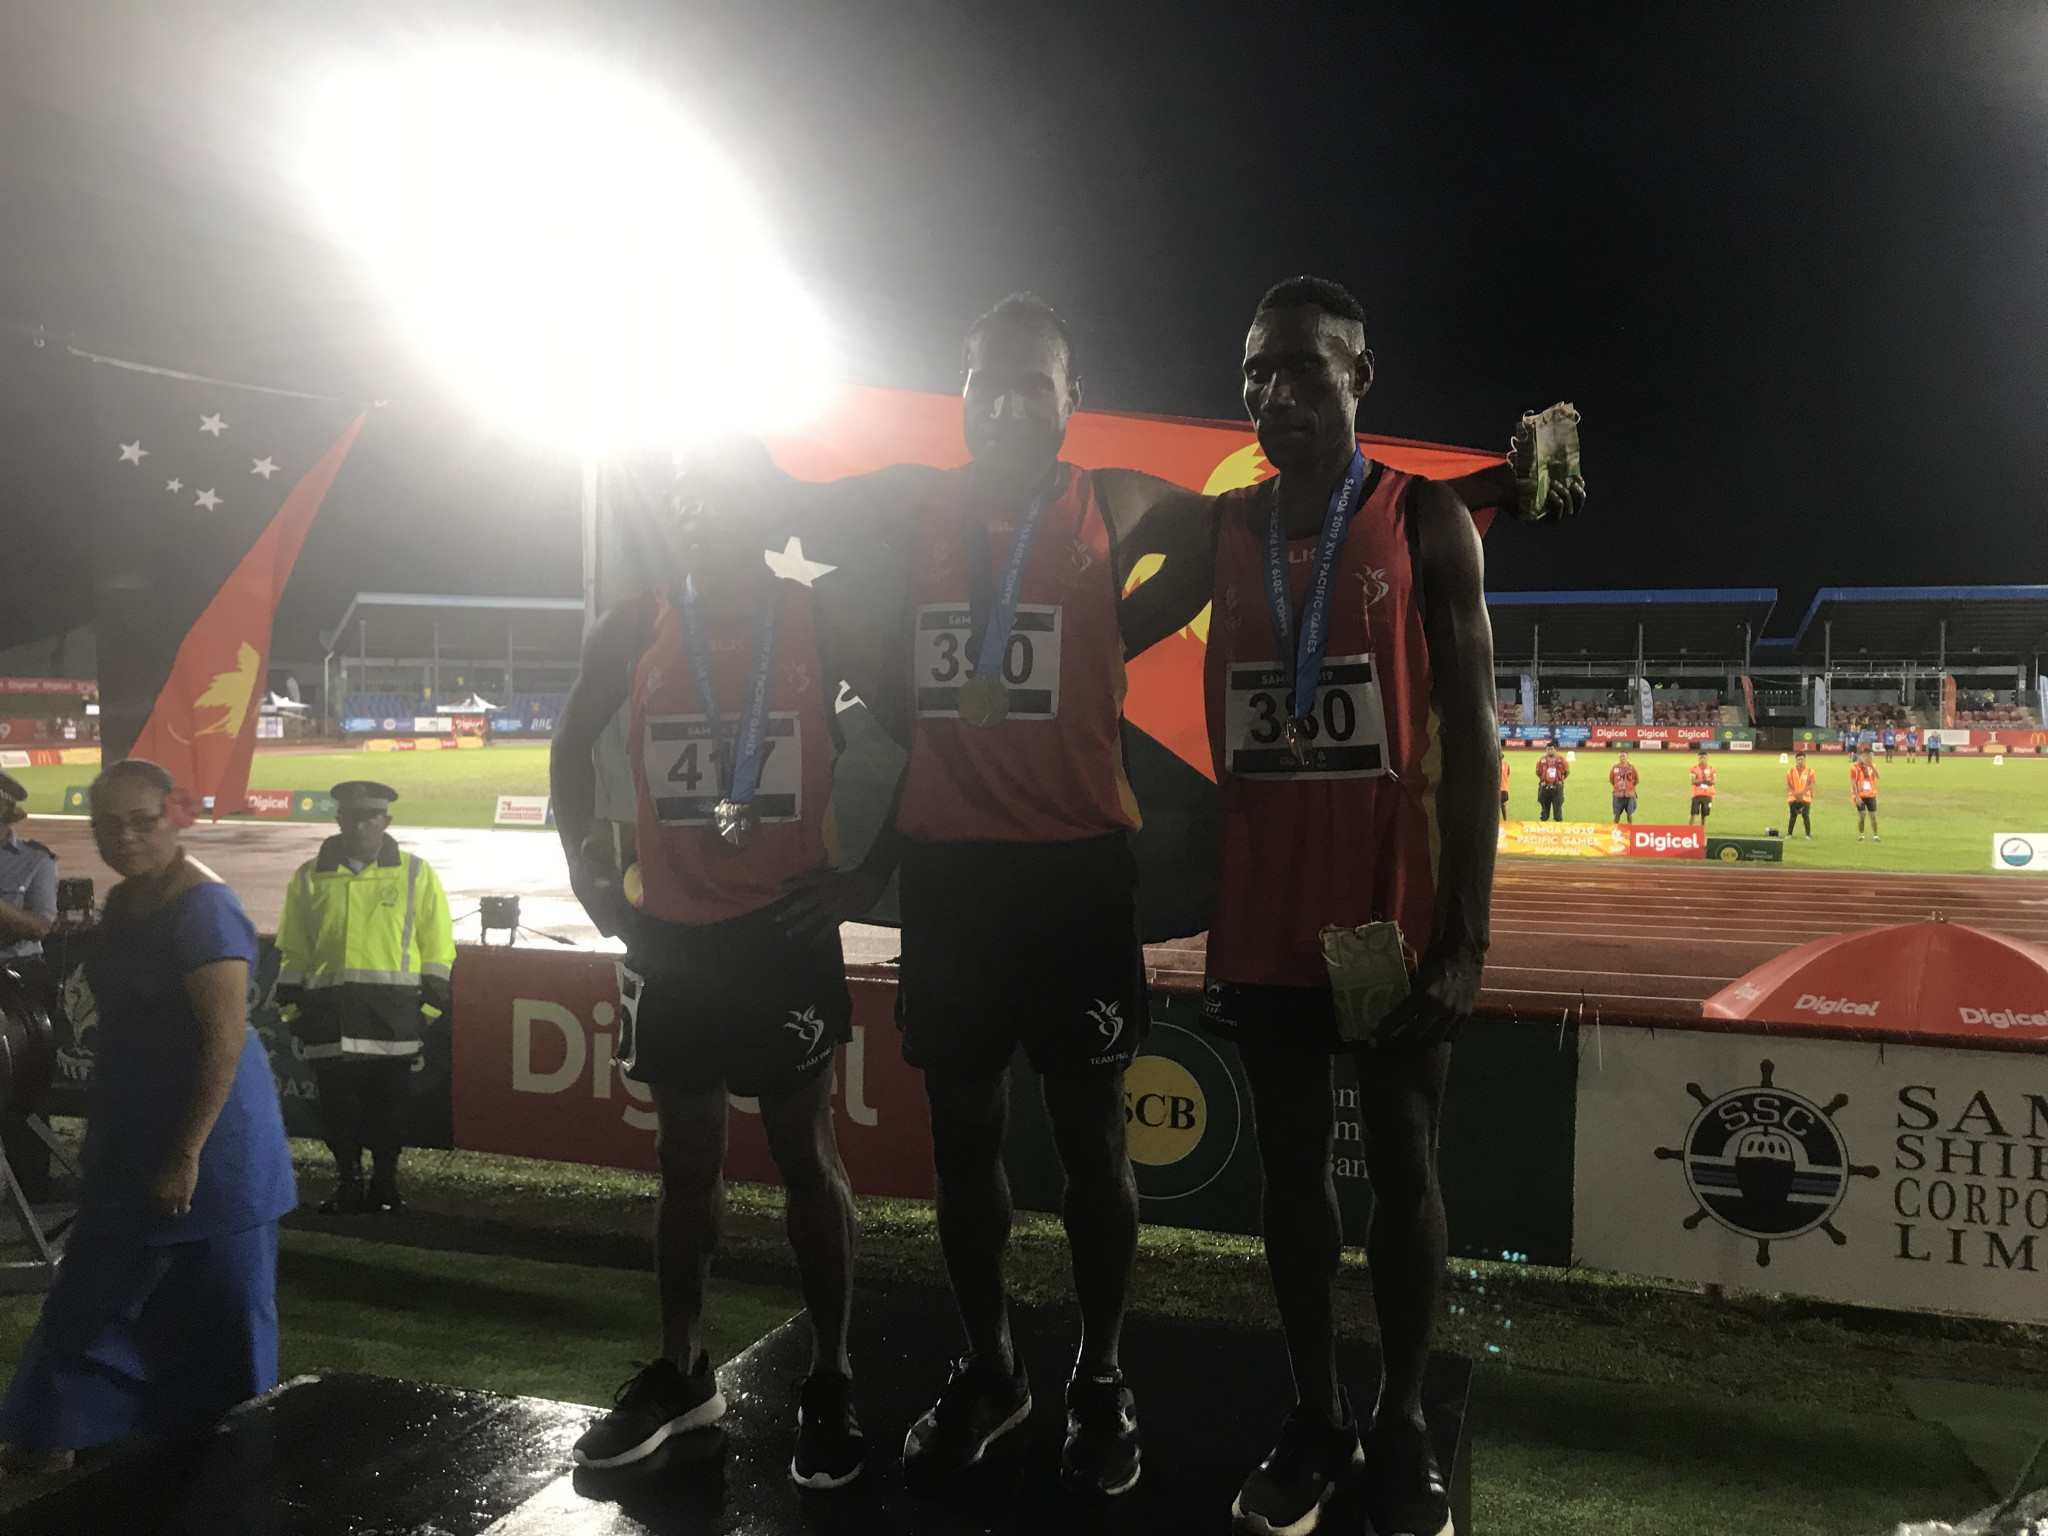 Papua New Guinea completed the first podium clean sweep of the Games in the men's 3,000 metres steeplechase ©ITG